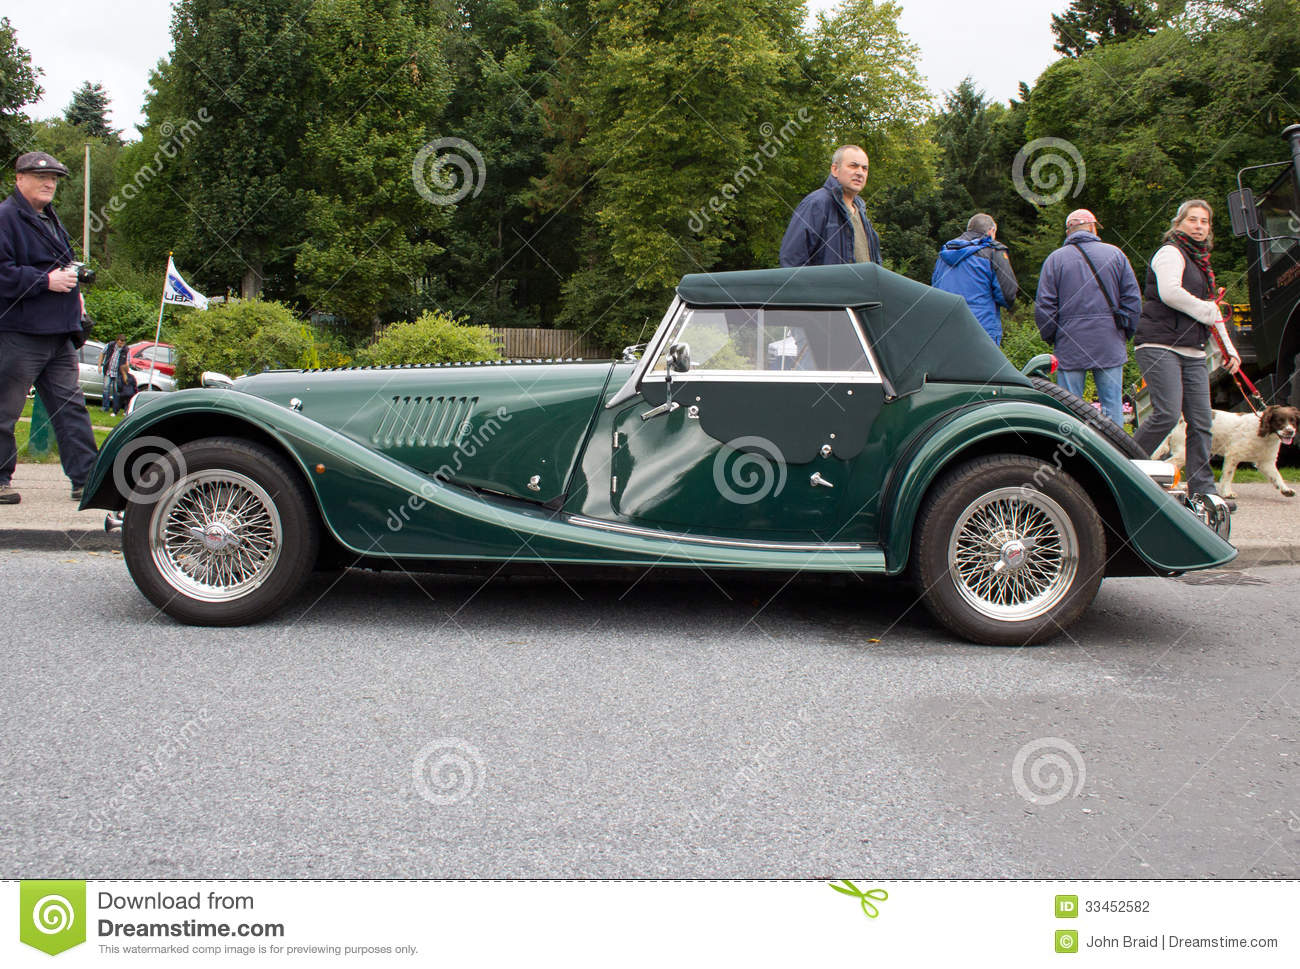 side view of a classic british sports car mr no pr no 0 397 0